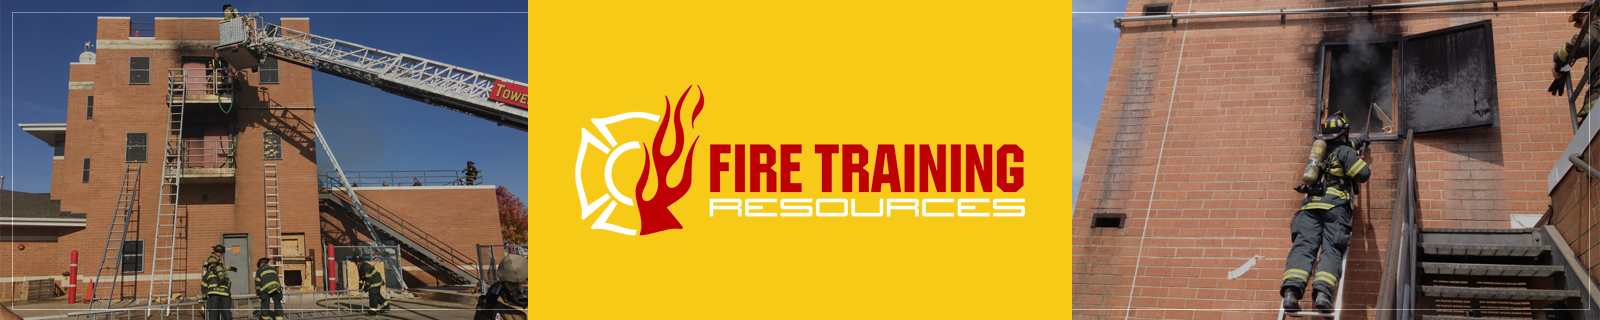 Fireground Tactics and Size-Up Training - Morris, Illinois